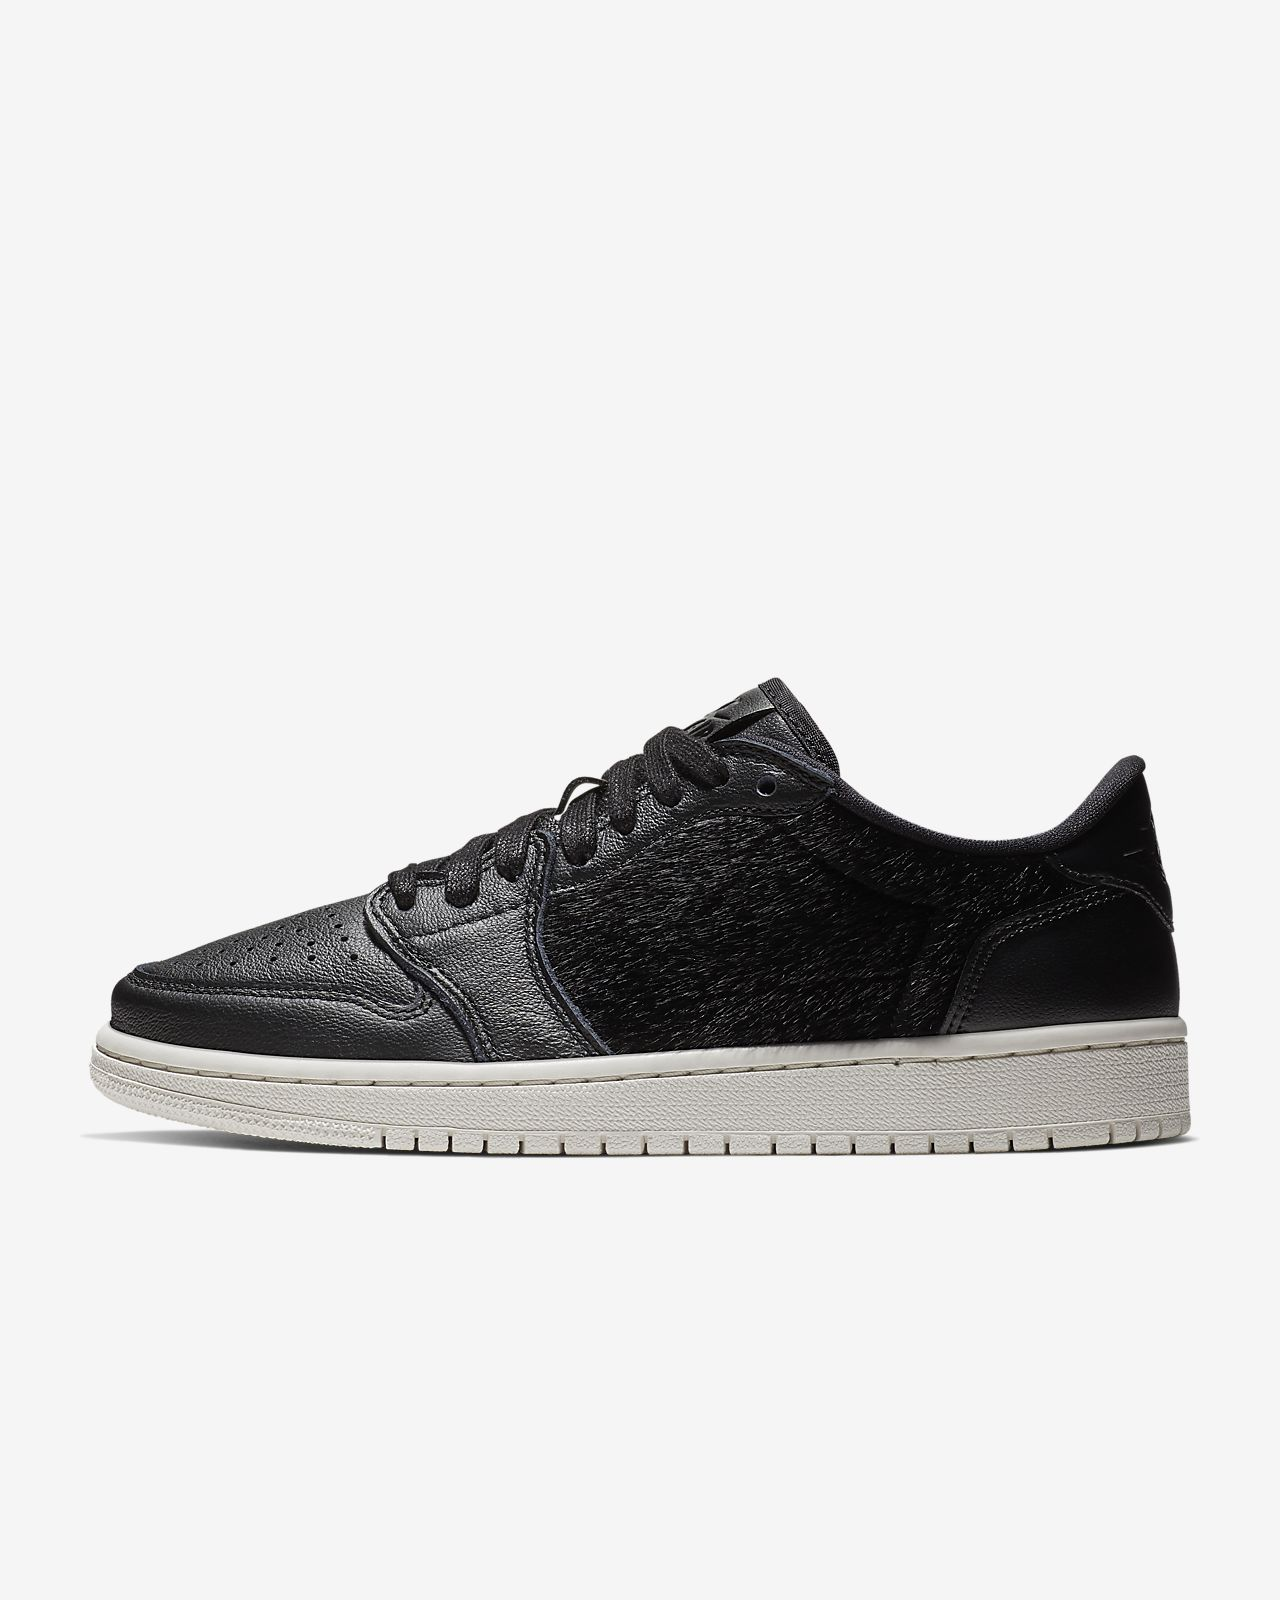 c9b6c7498ce8 Air Jordan 1 Retro Low NS Women's Shoe. Nike.com GB